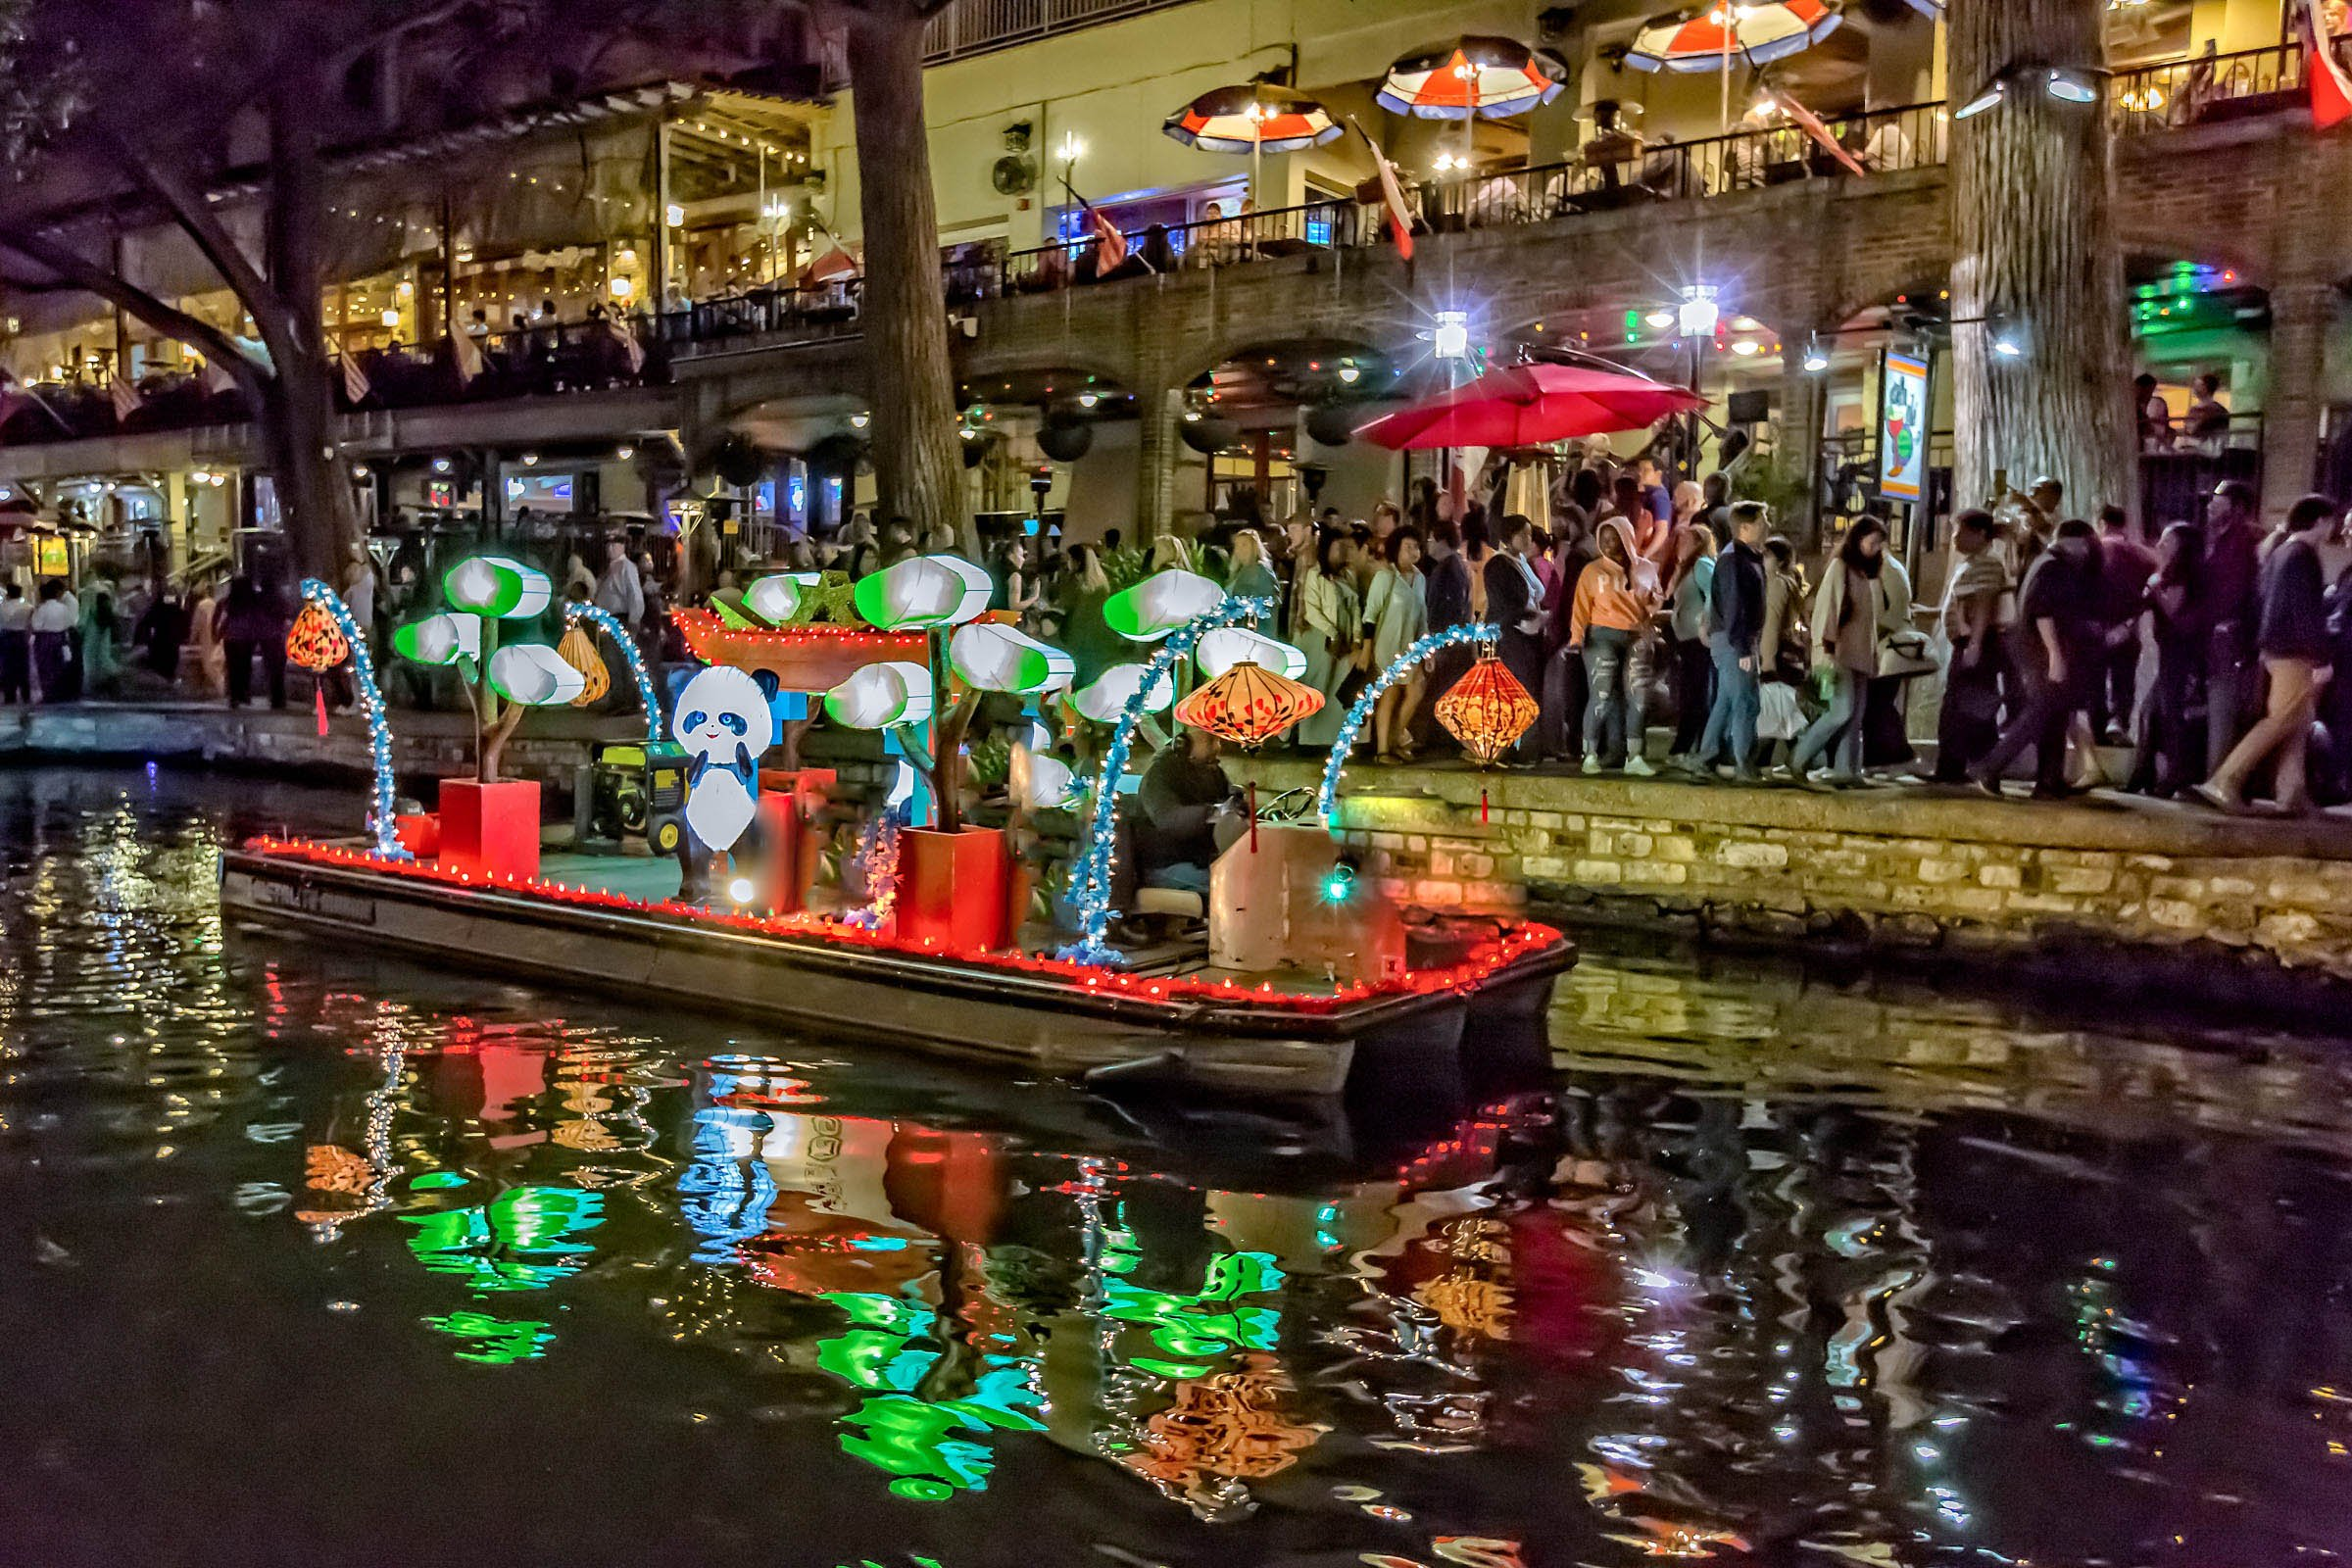 San Antonio Parade of Lanterns | Jan 25-Feb 8, 2020